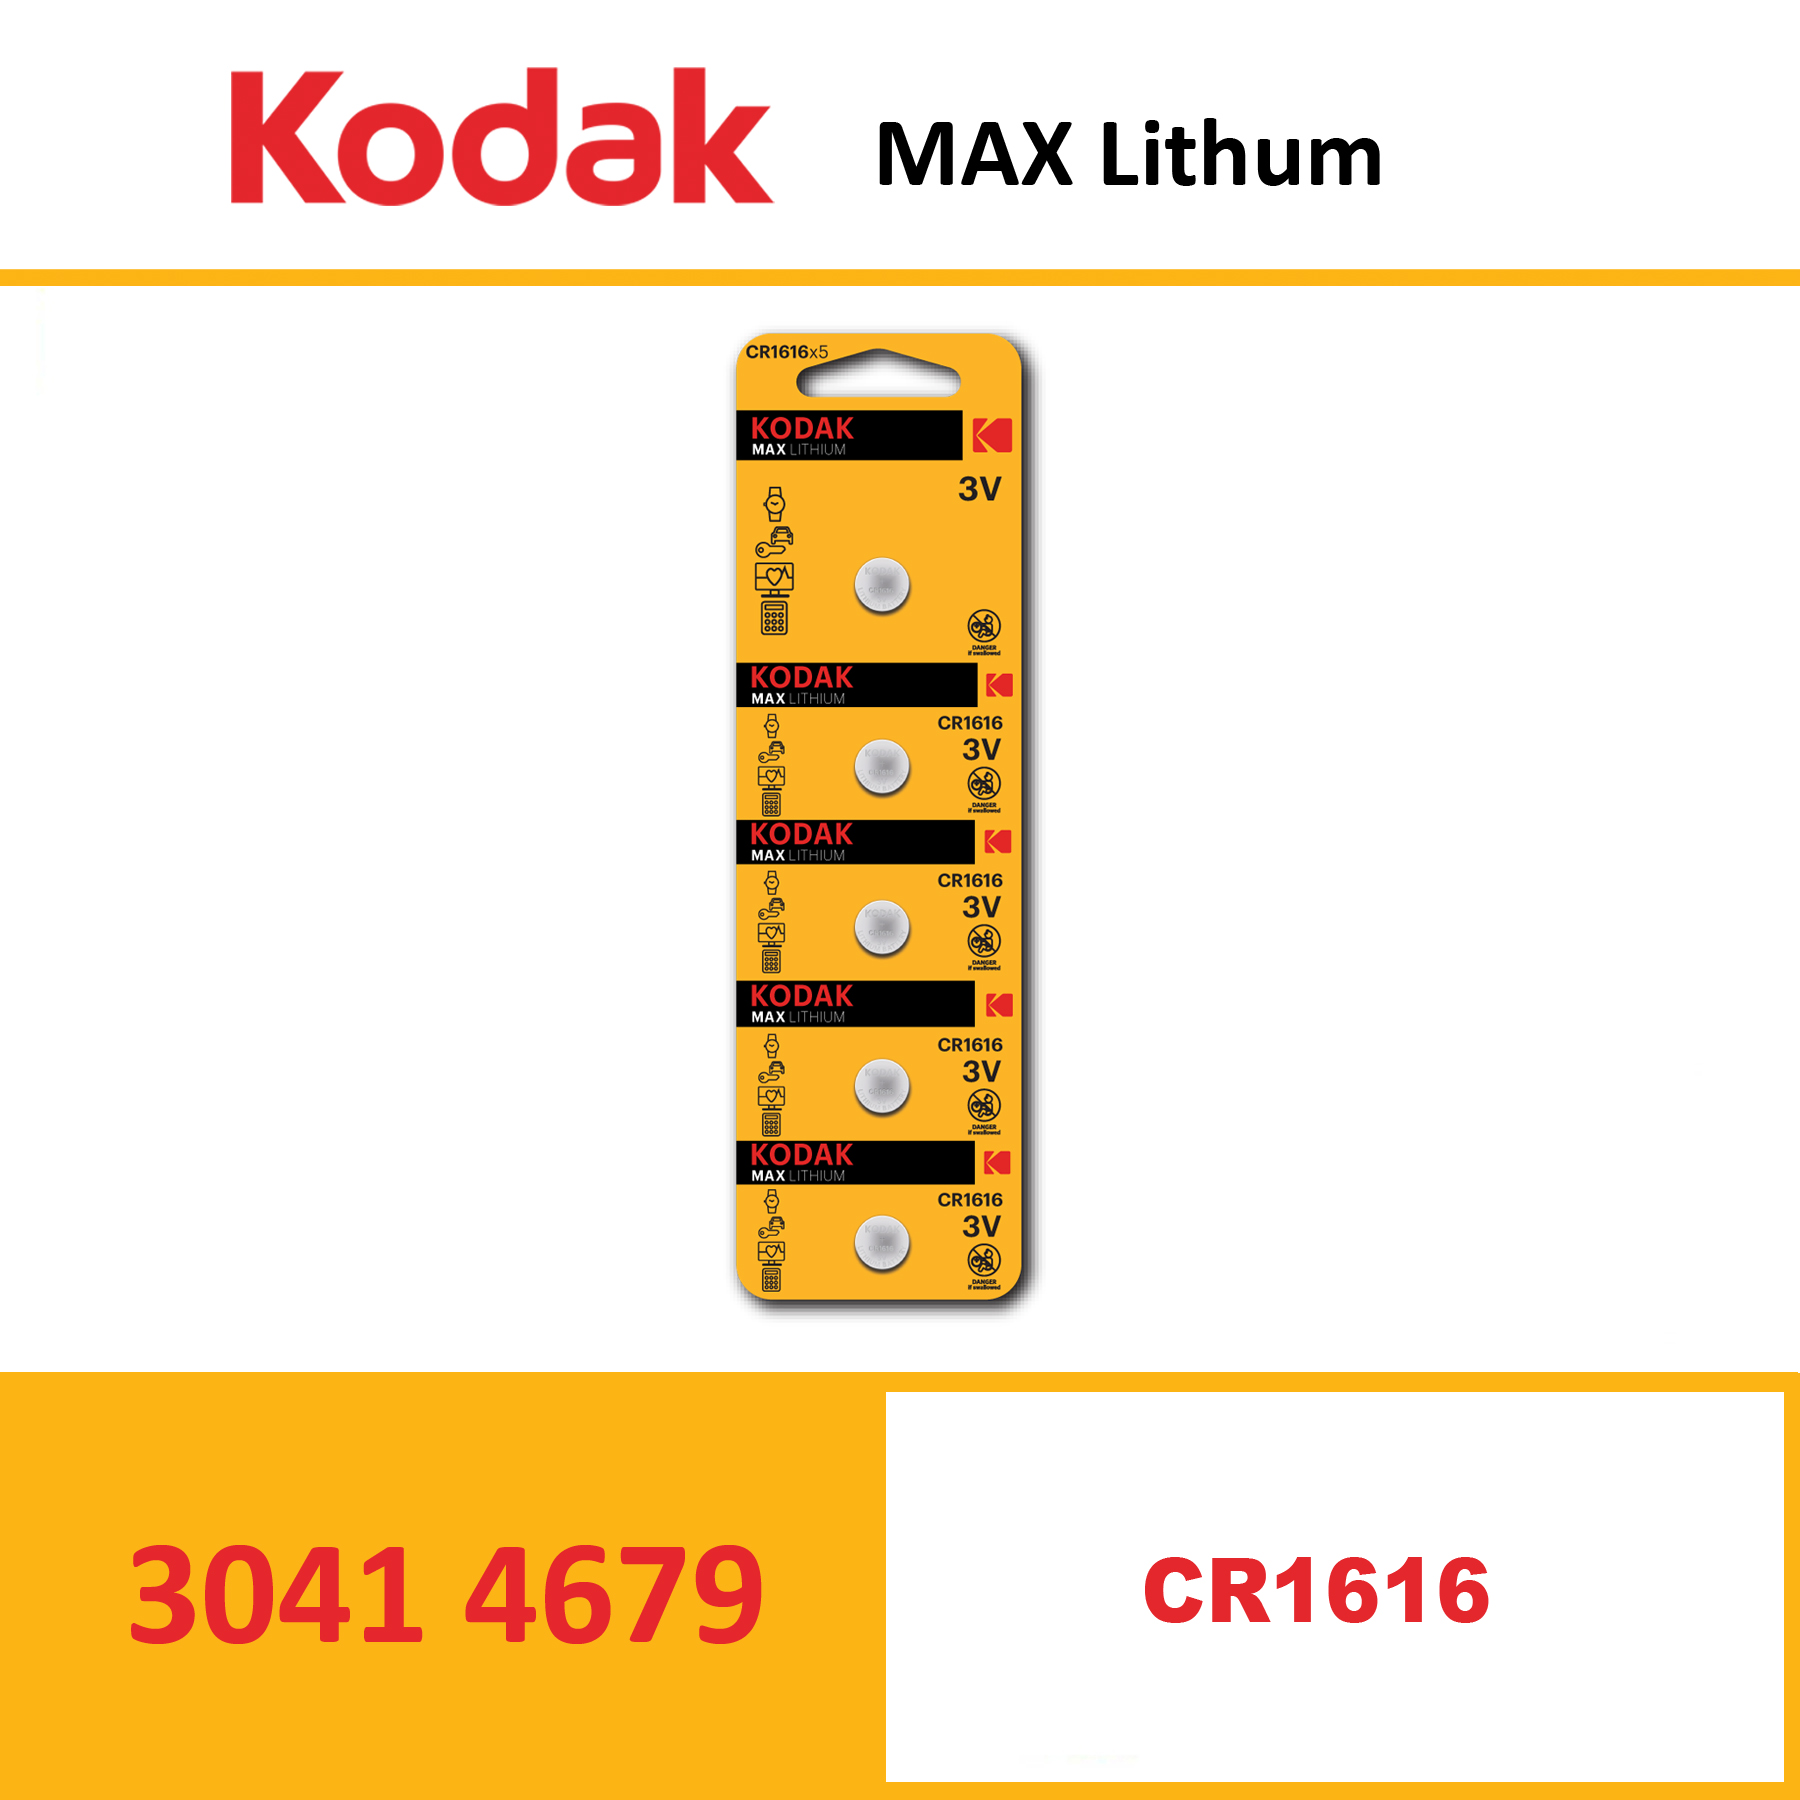 KODAK KCR1616 MAX Lithium coin cell Pack of 5 Piece